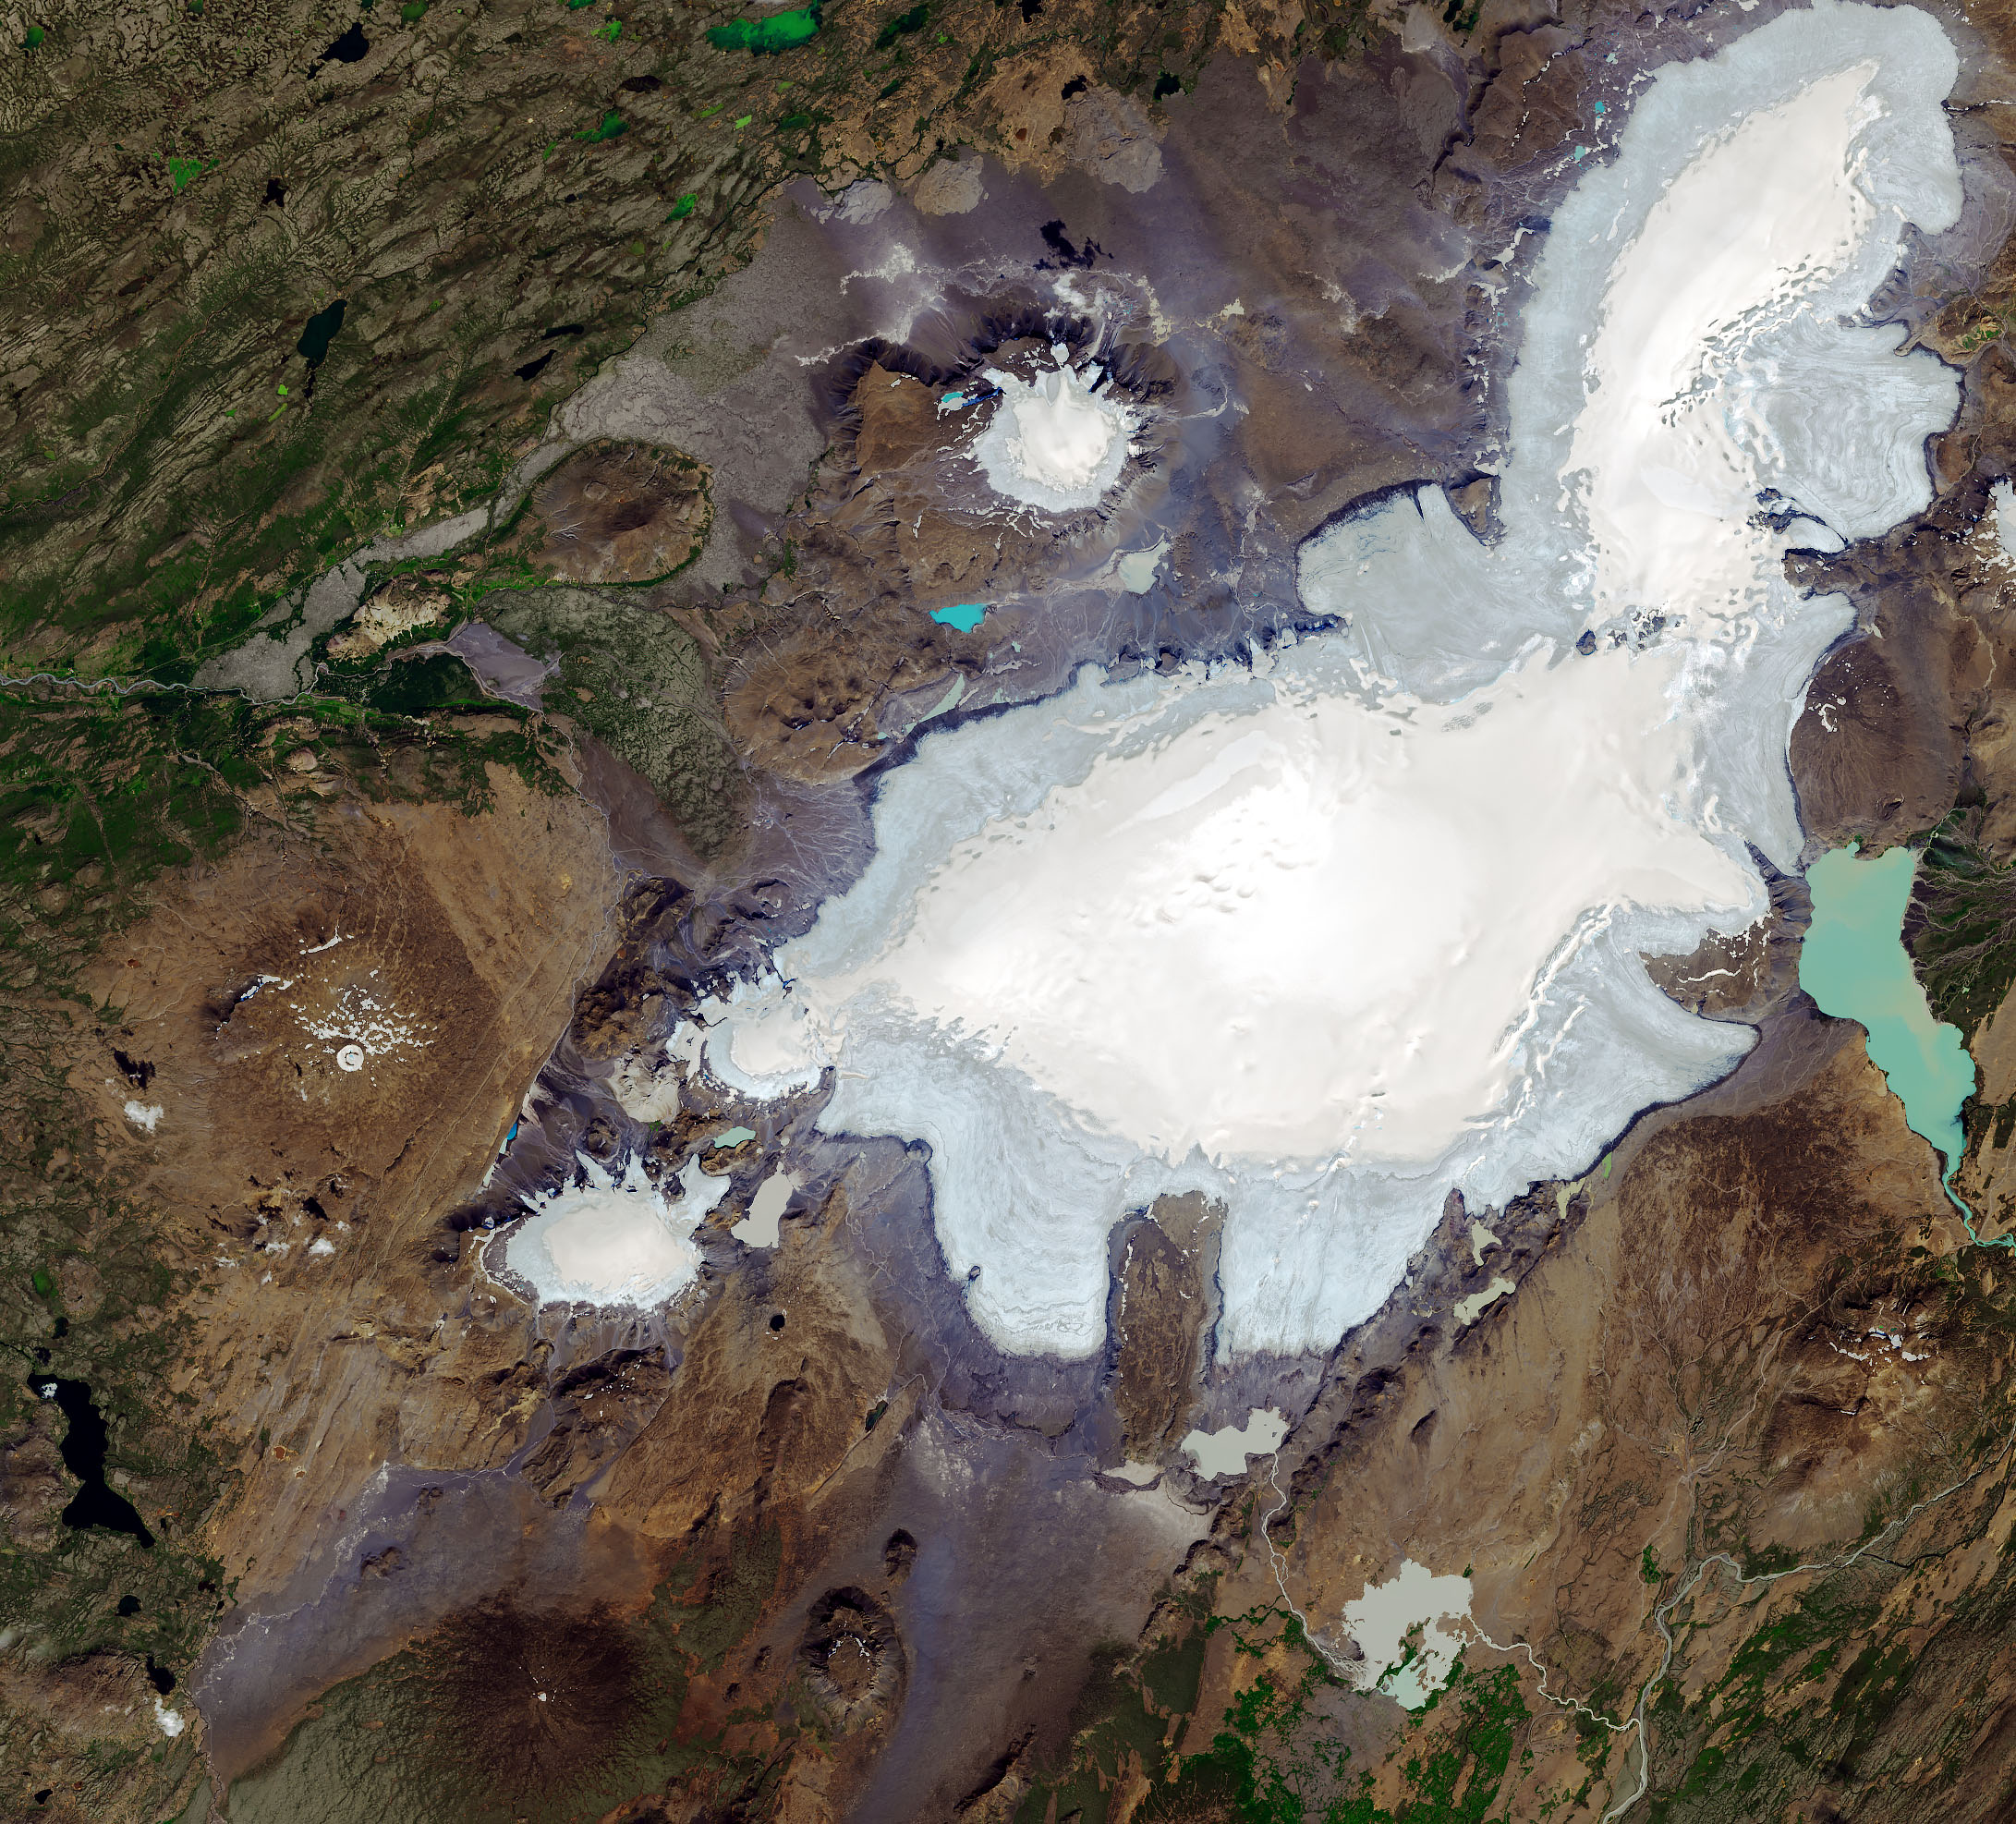 Iceland's sixth largest glacier is now just a glacial lake. What will happen when all the ice disappears from Iceland?